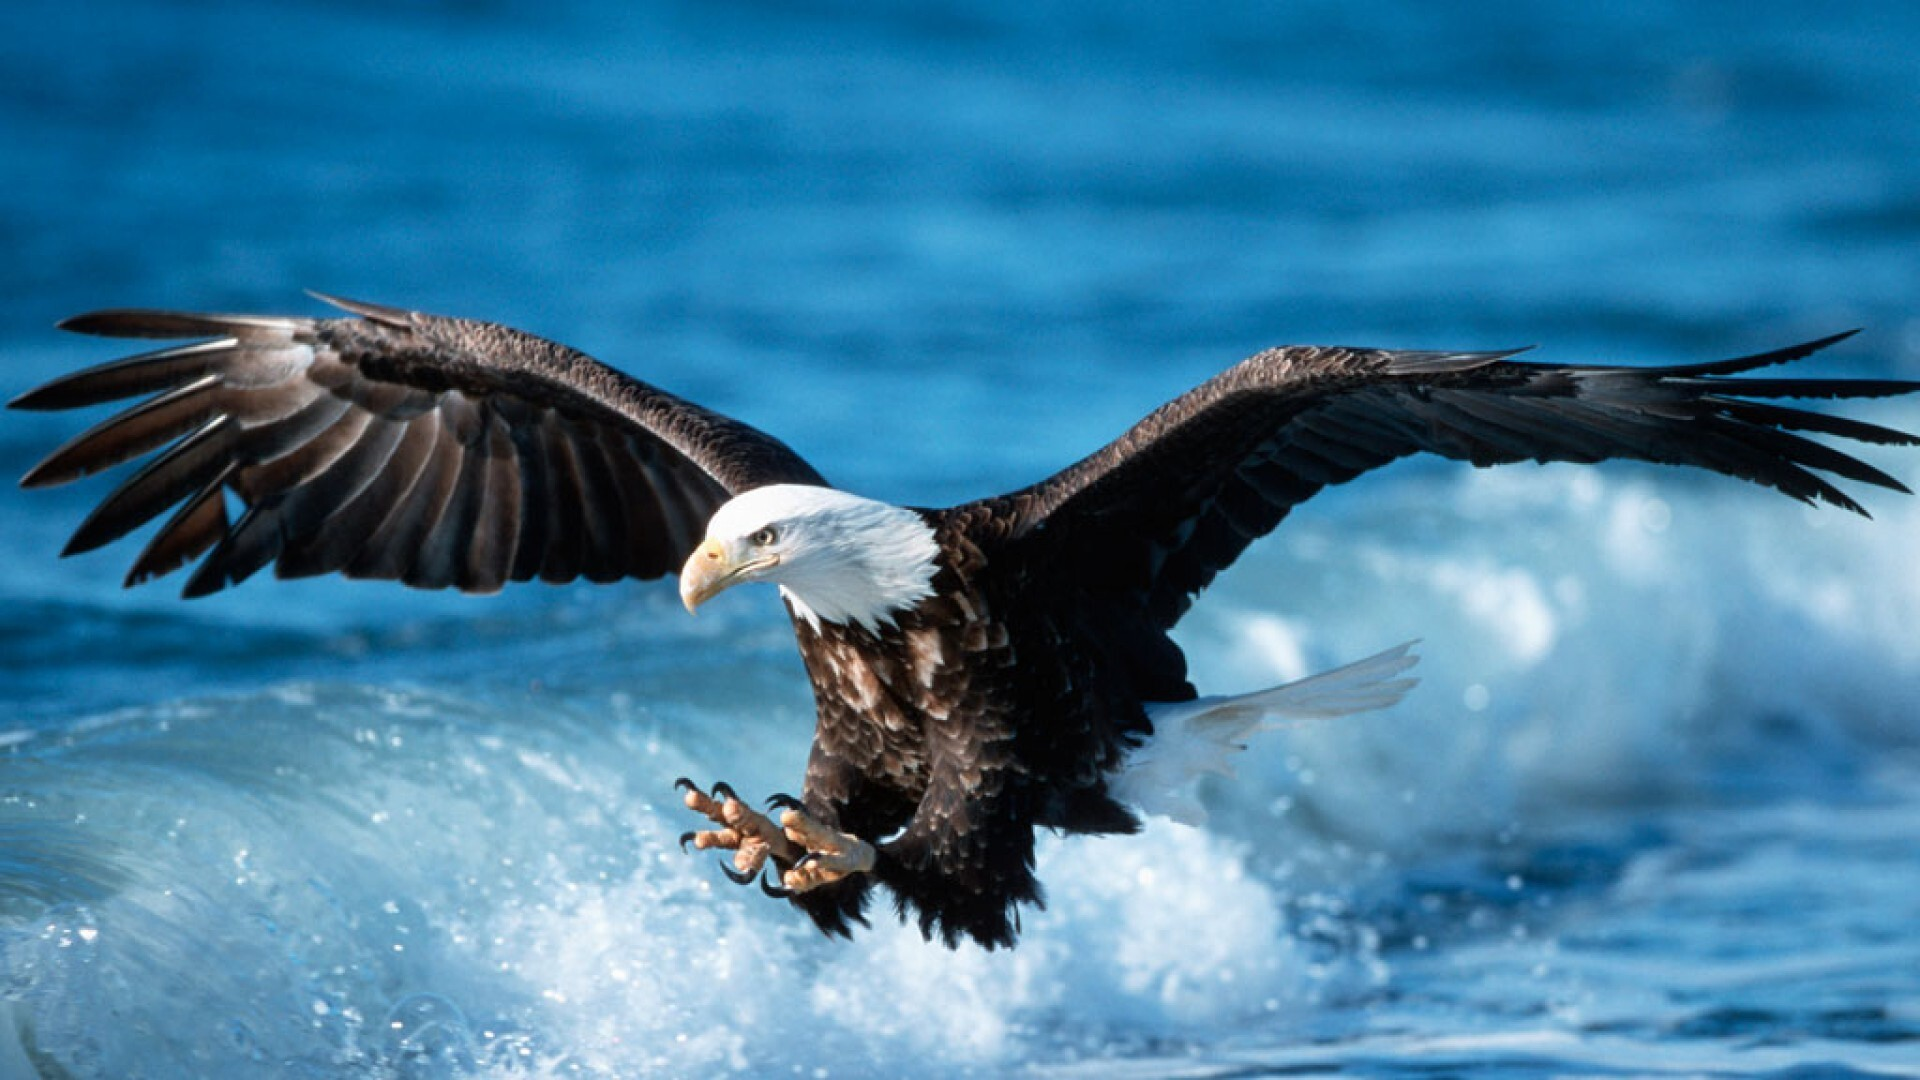 eagle hunting fish in sea hd wallpapers